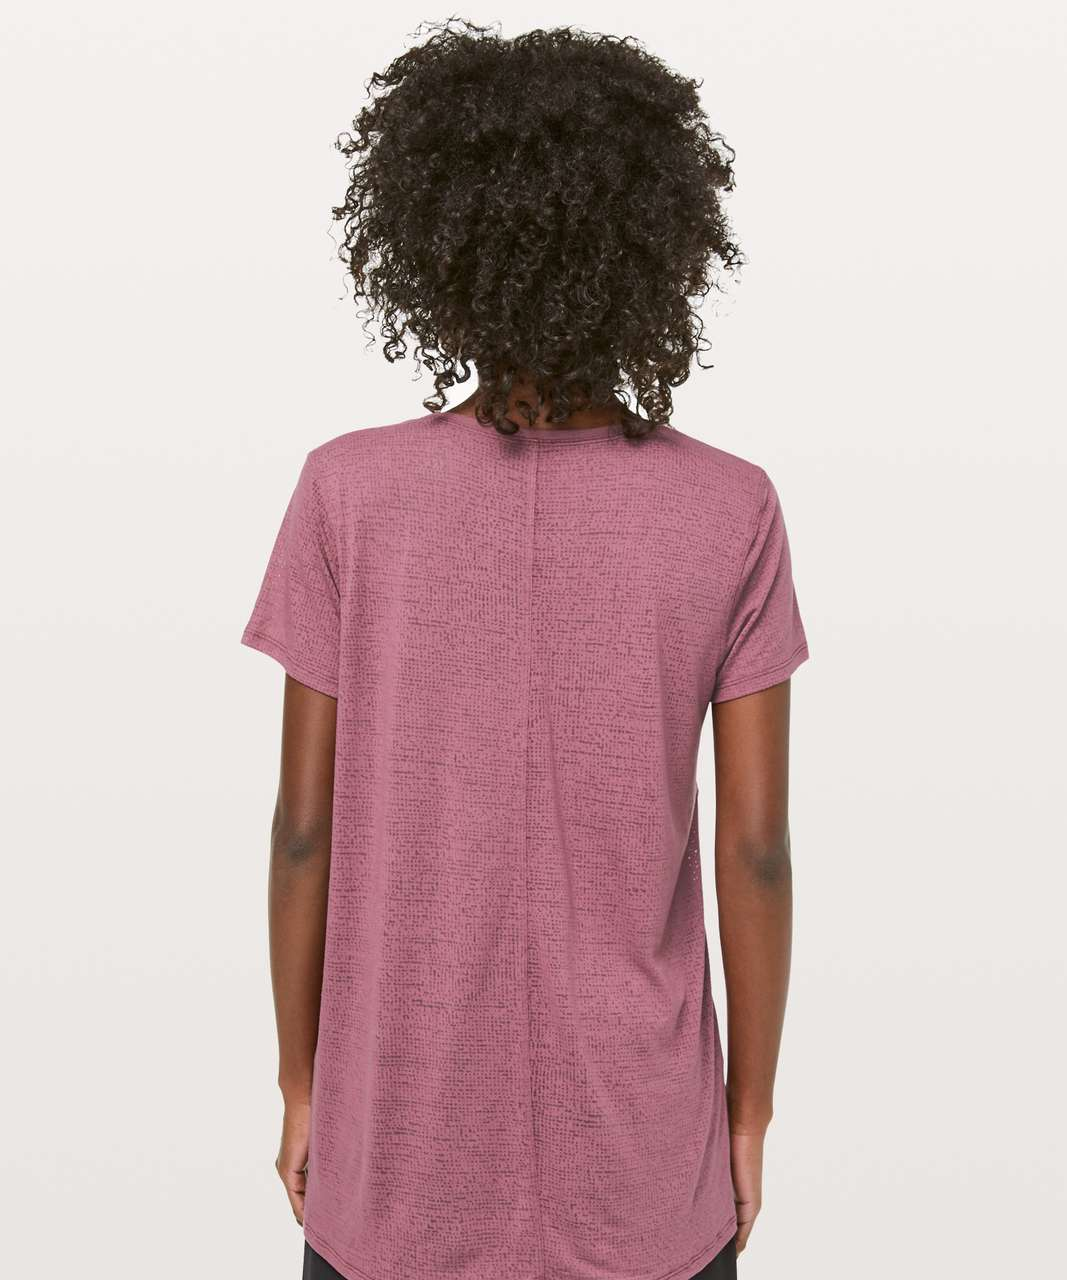 Lululemon Back To Me Tee - Misty Merlot